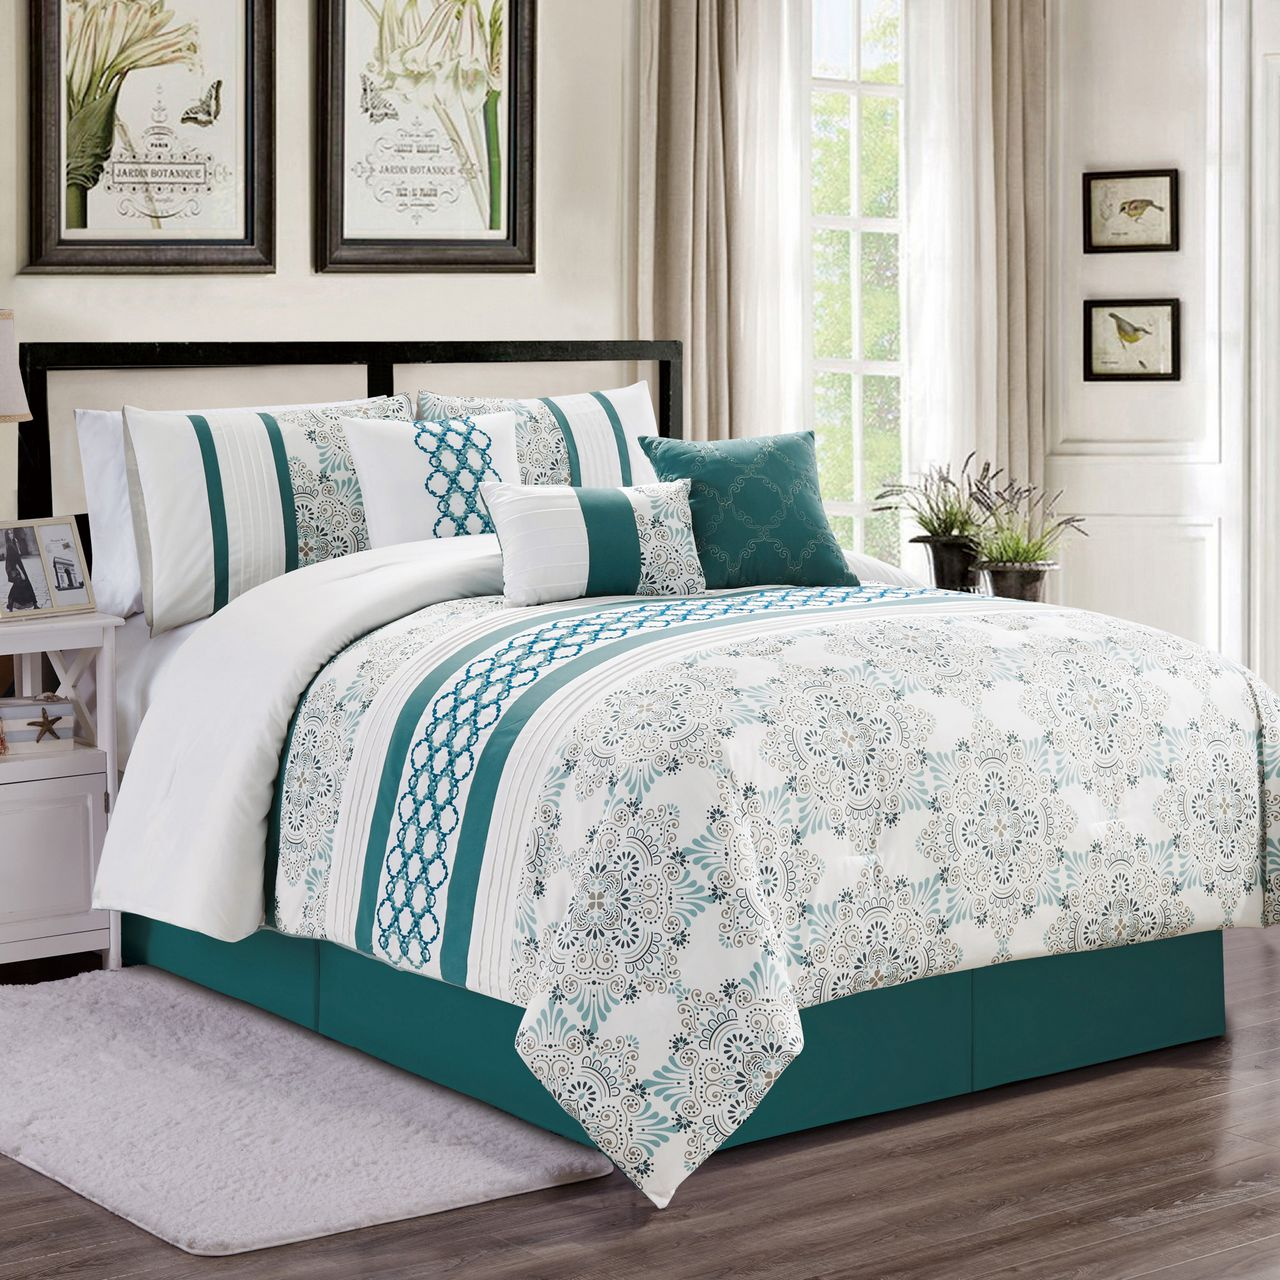 7 Piece Kulbert Teal White Comforter Set